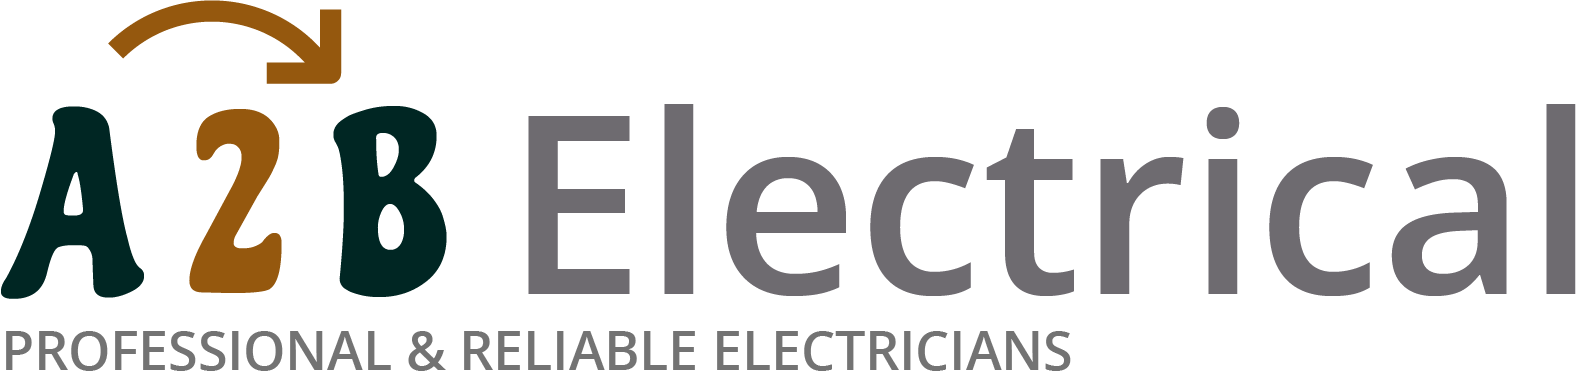 If you have electrical wiring problems in Upminster, we can provide an electrician to have a look for you.